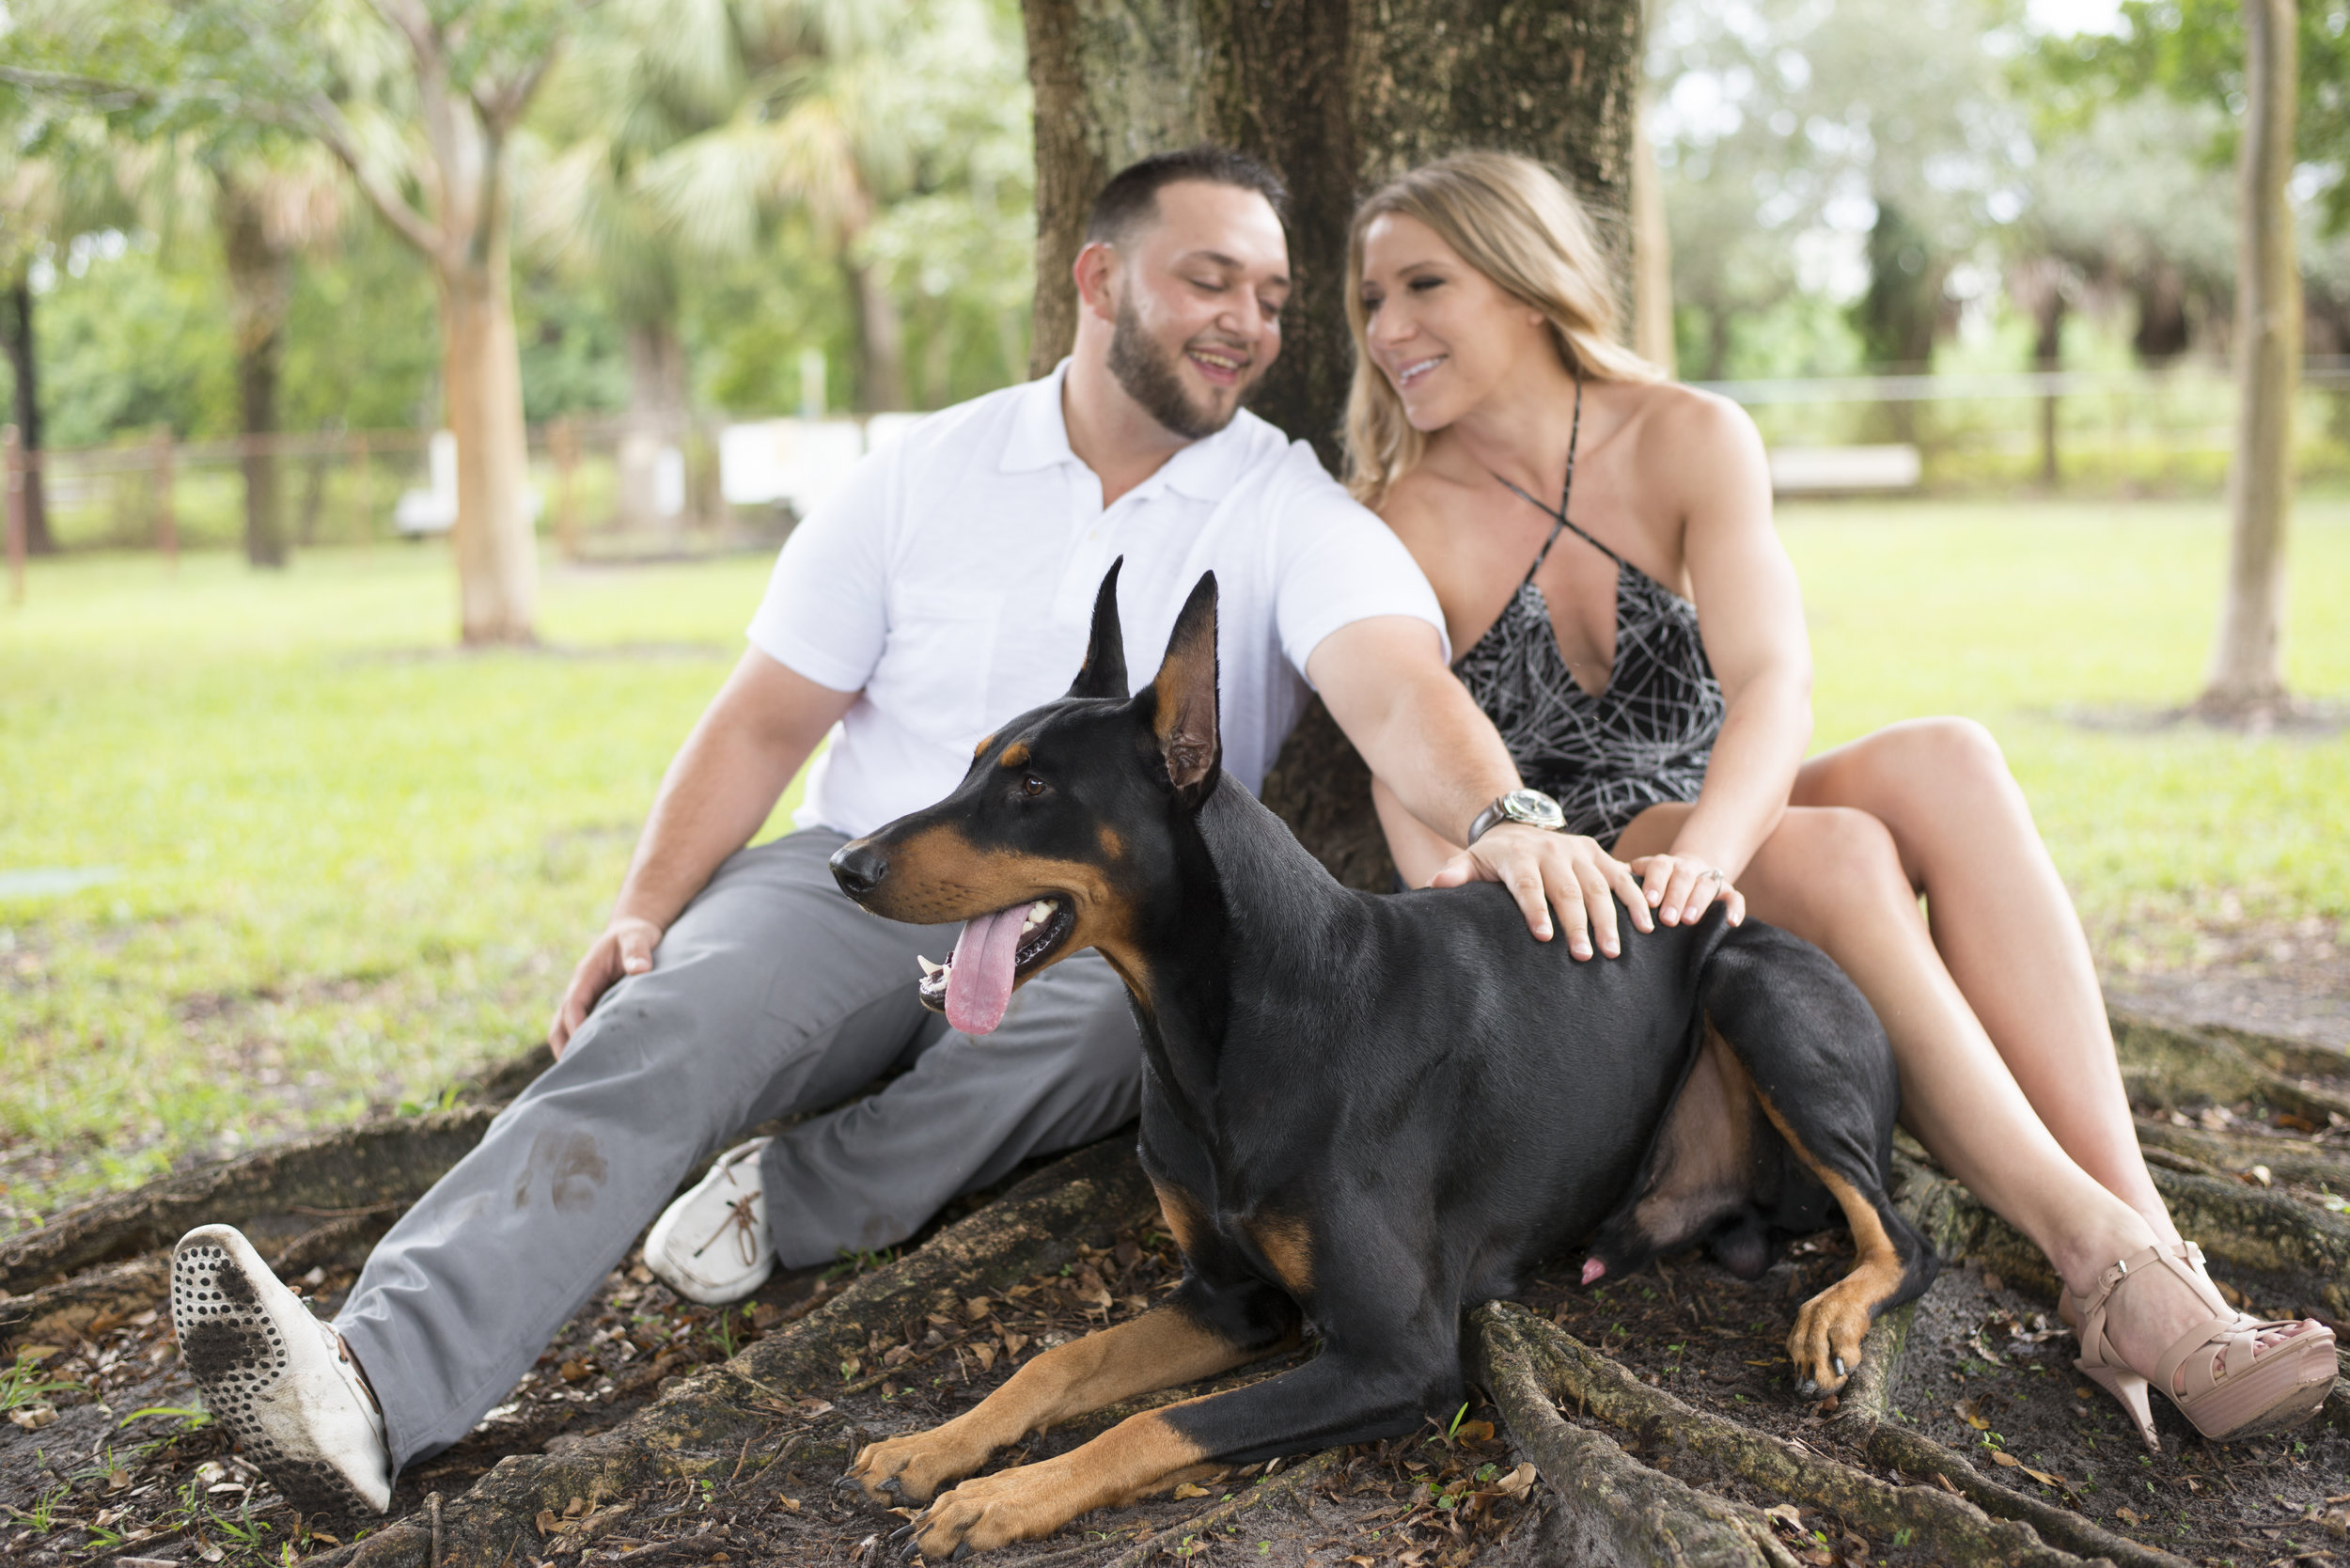 Engagement photos in Florida. Las Vegas Wedding Planner Andrea Eppolito. Image by AltF Photography.